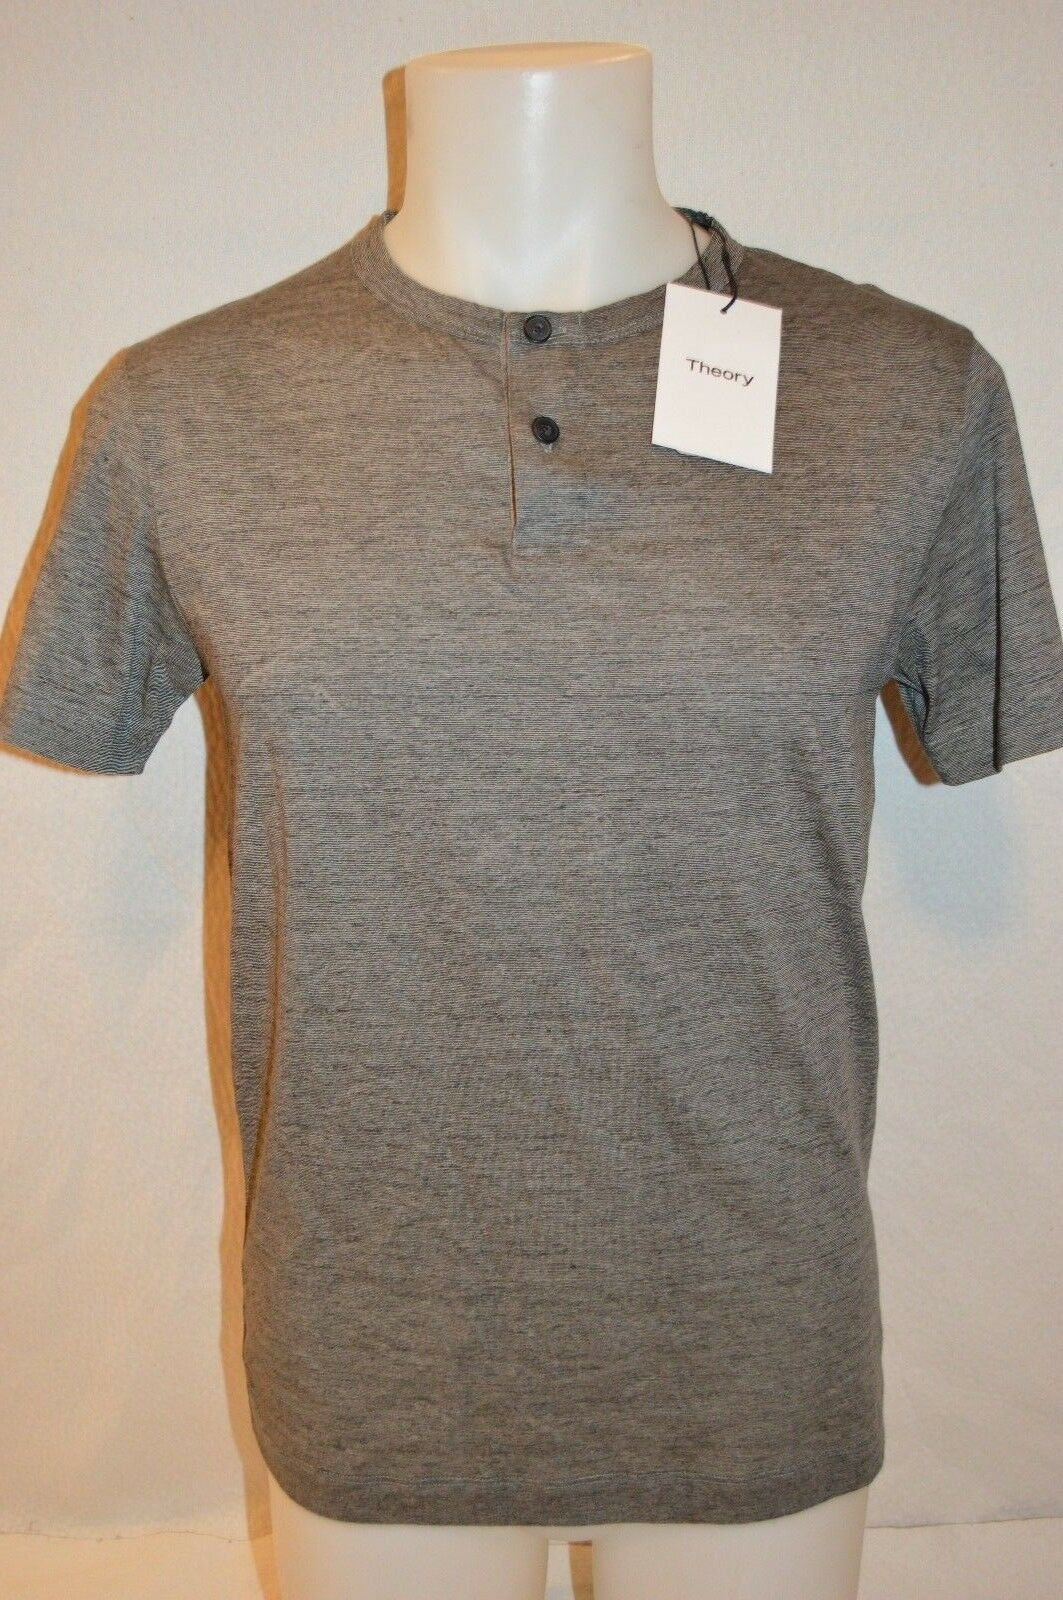 THEORY Man's GASKELL Button Up T-Shirt  NEW  Größe Large  Retail 95